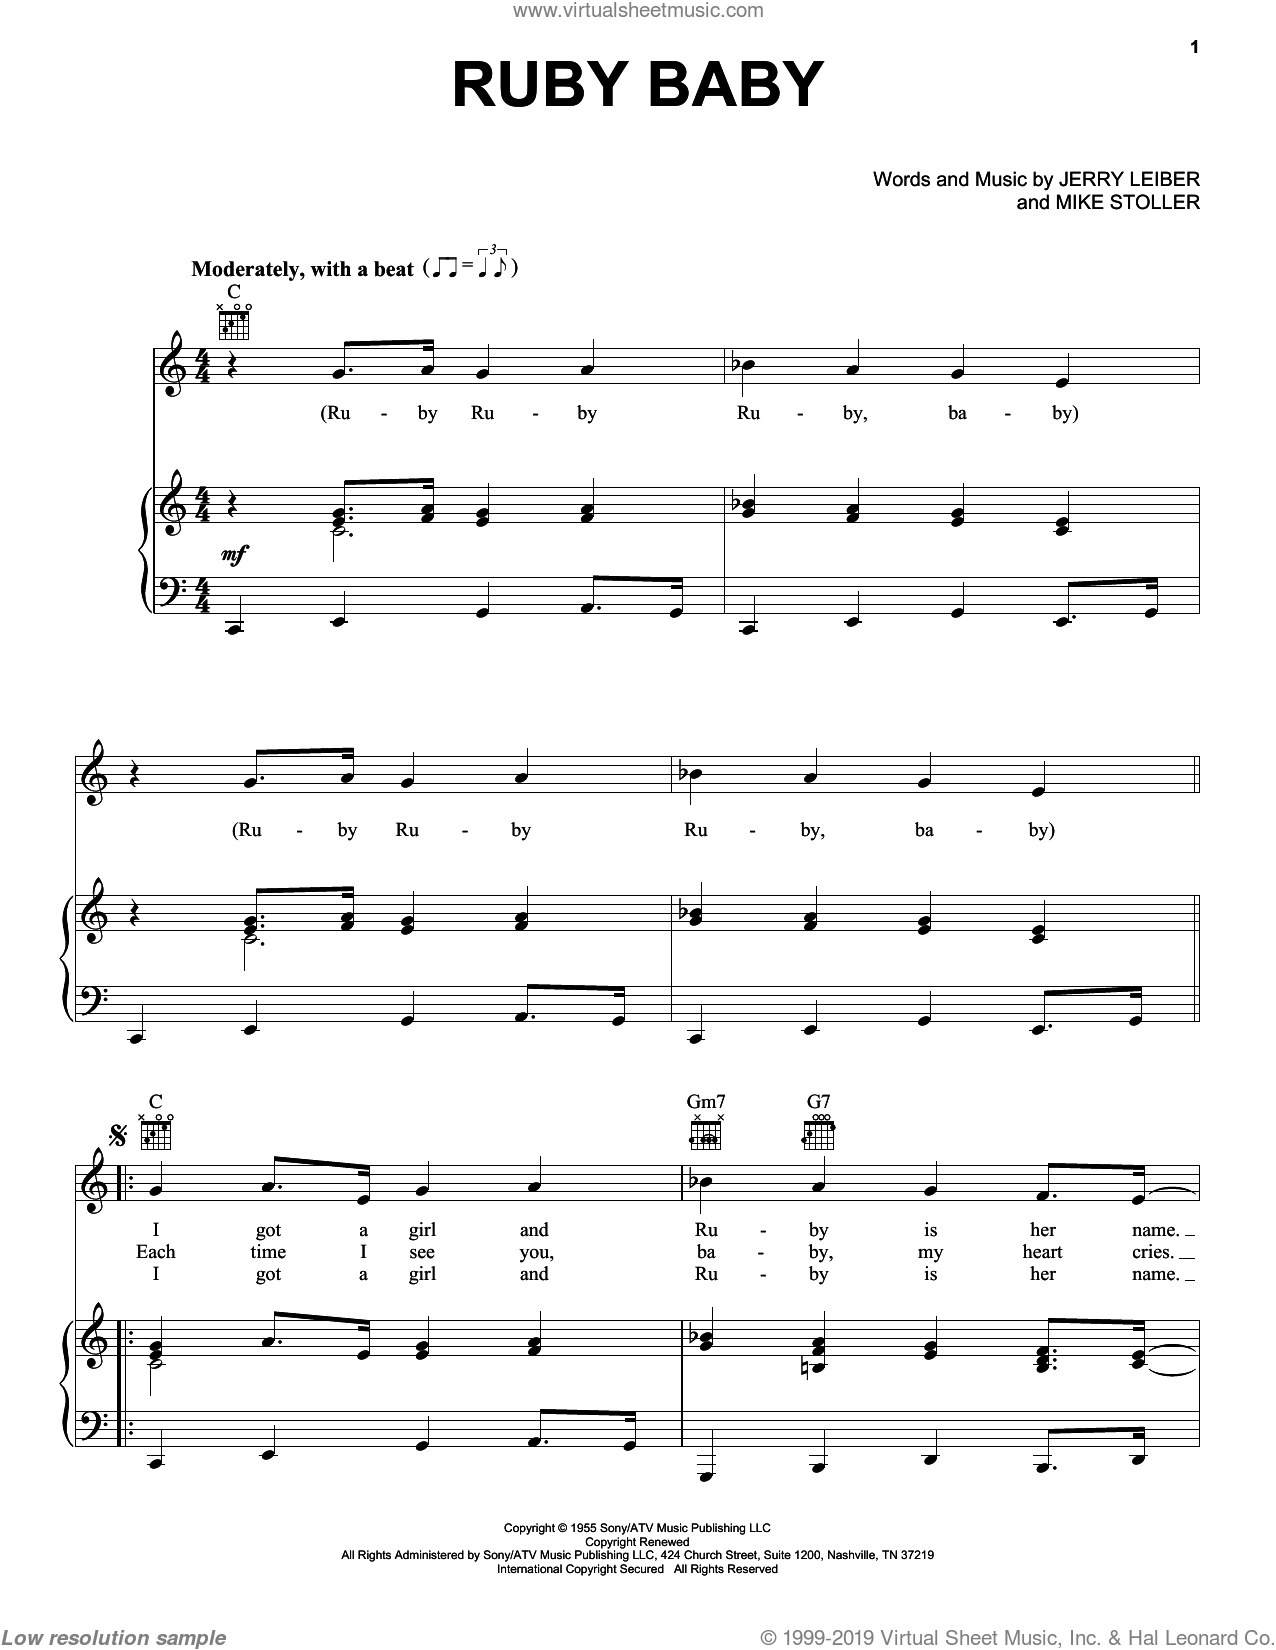 Ruby Baby sheet music for voice, piano or guitar by Mike Stoller